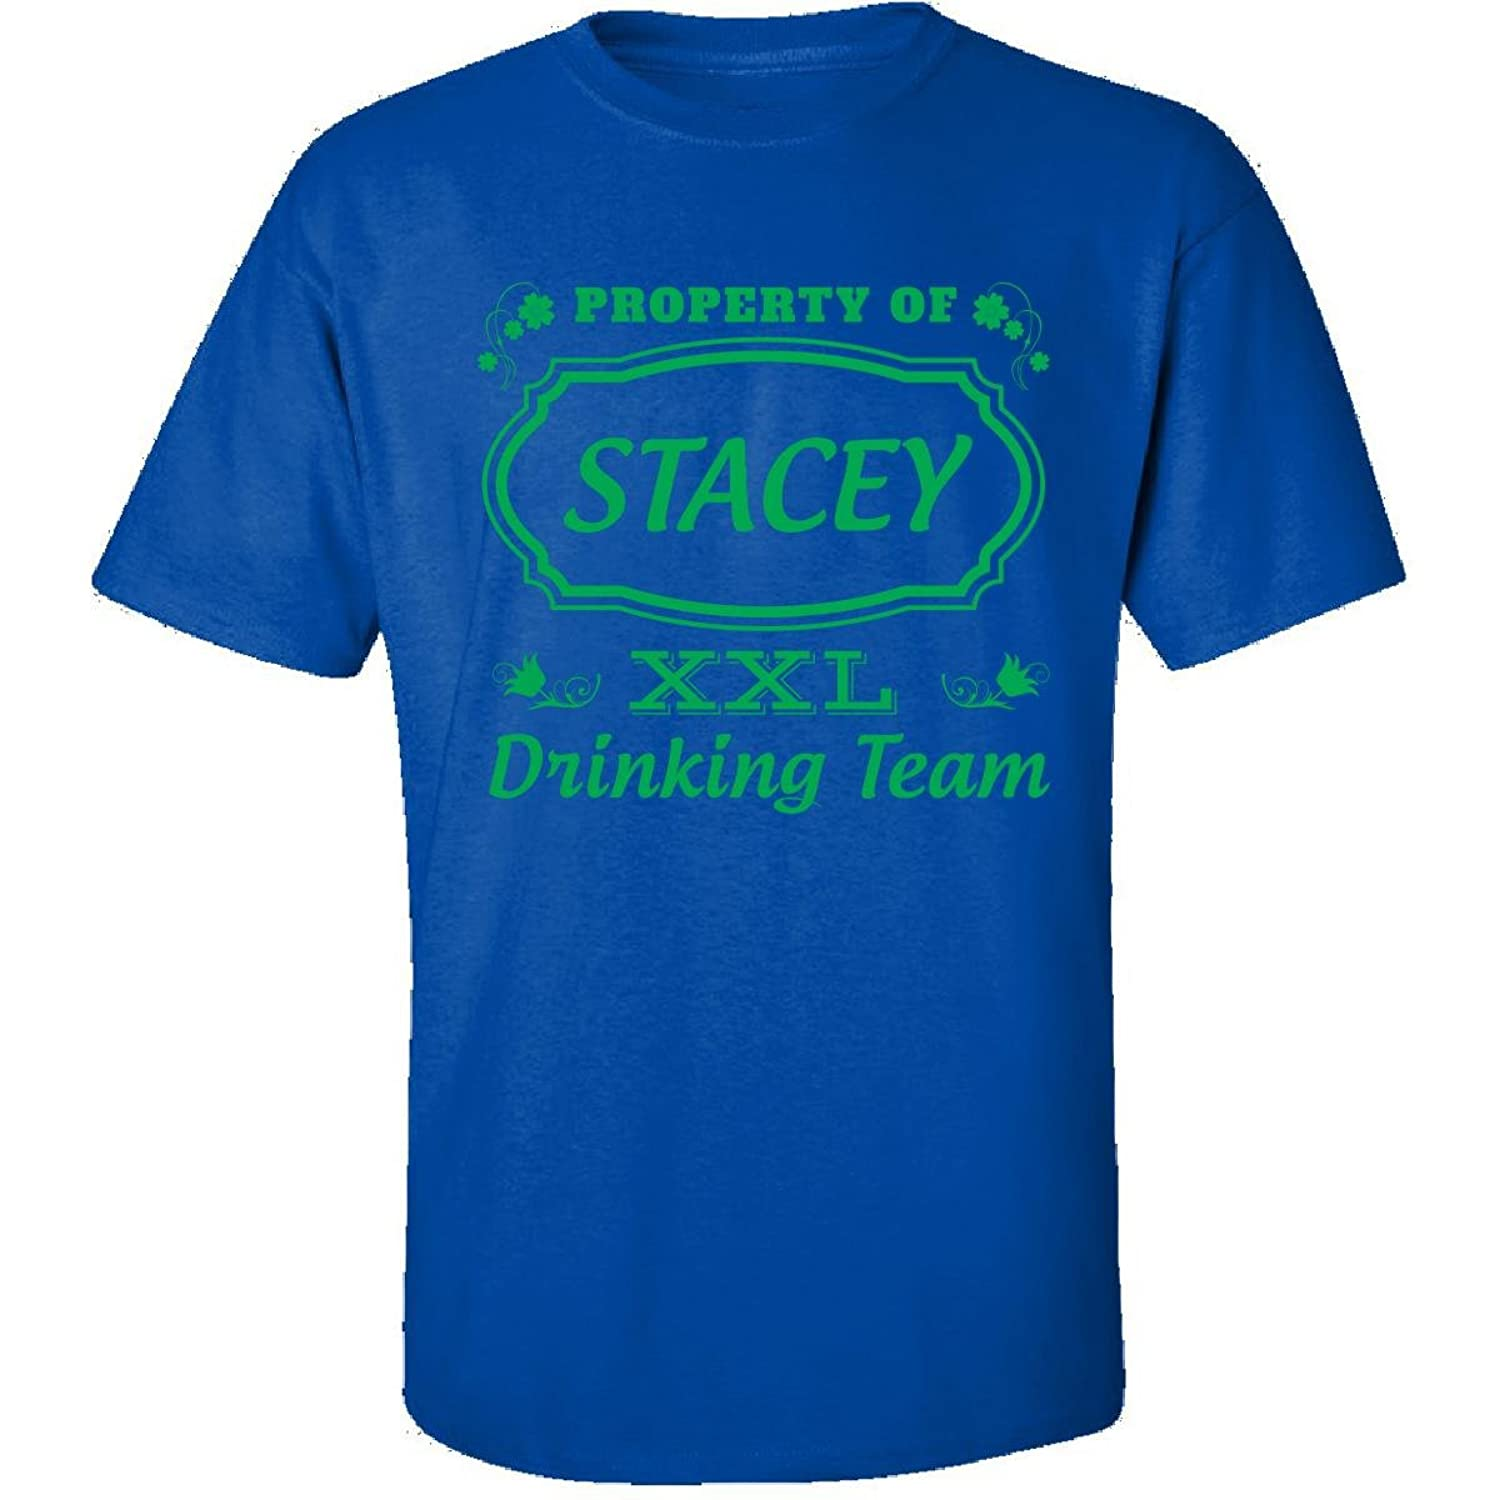 Property Of Stacey St Patrick Day Beer Drinking Team - Adult Shirt